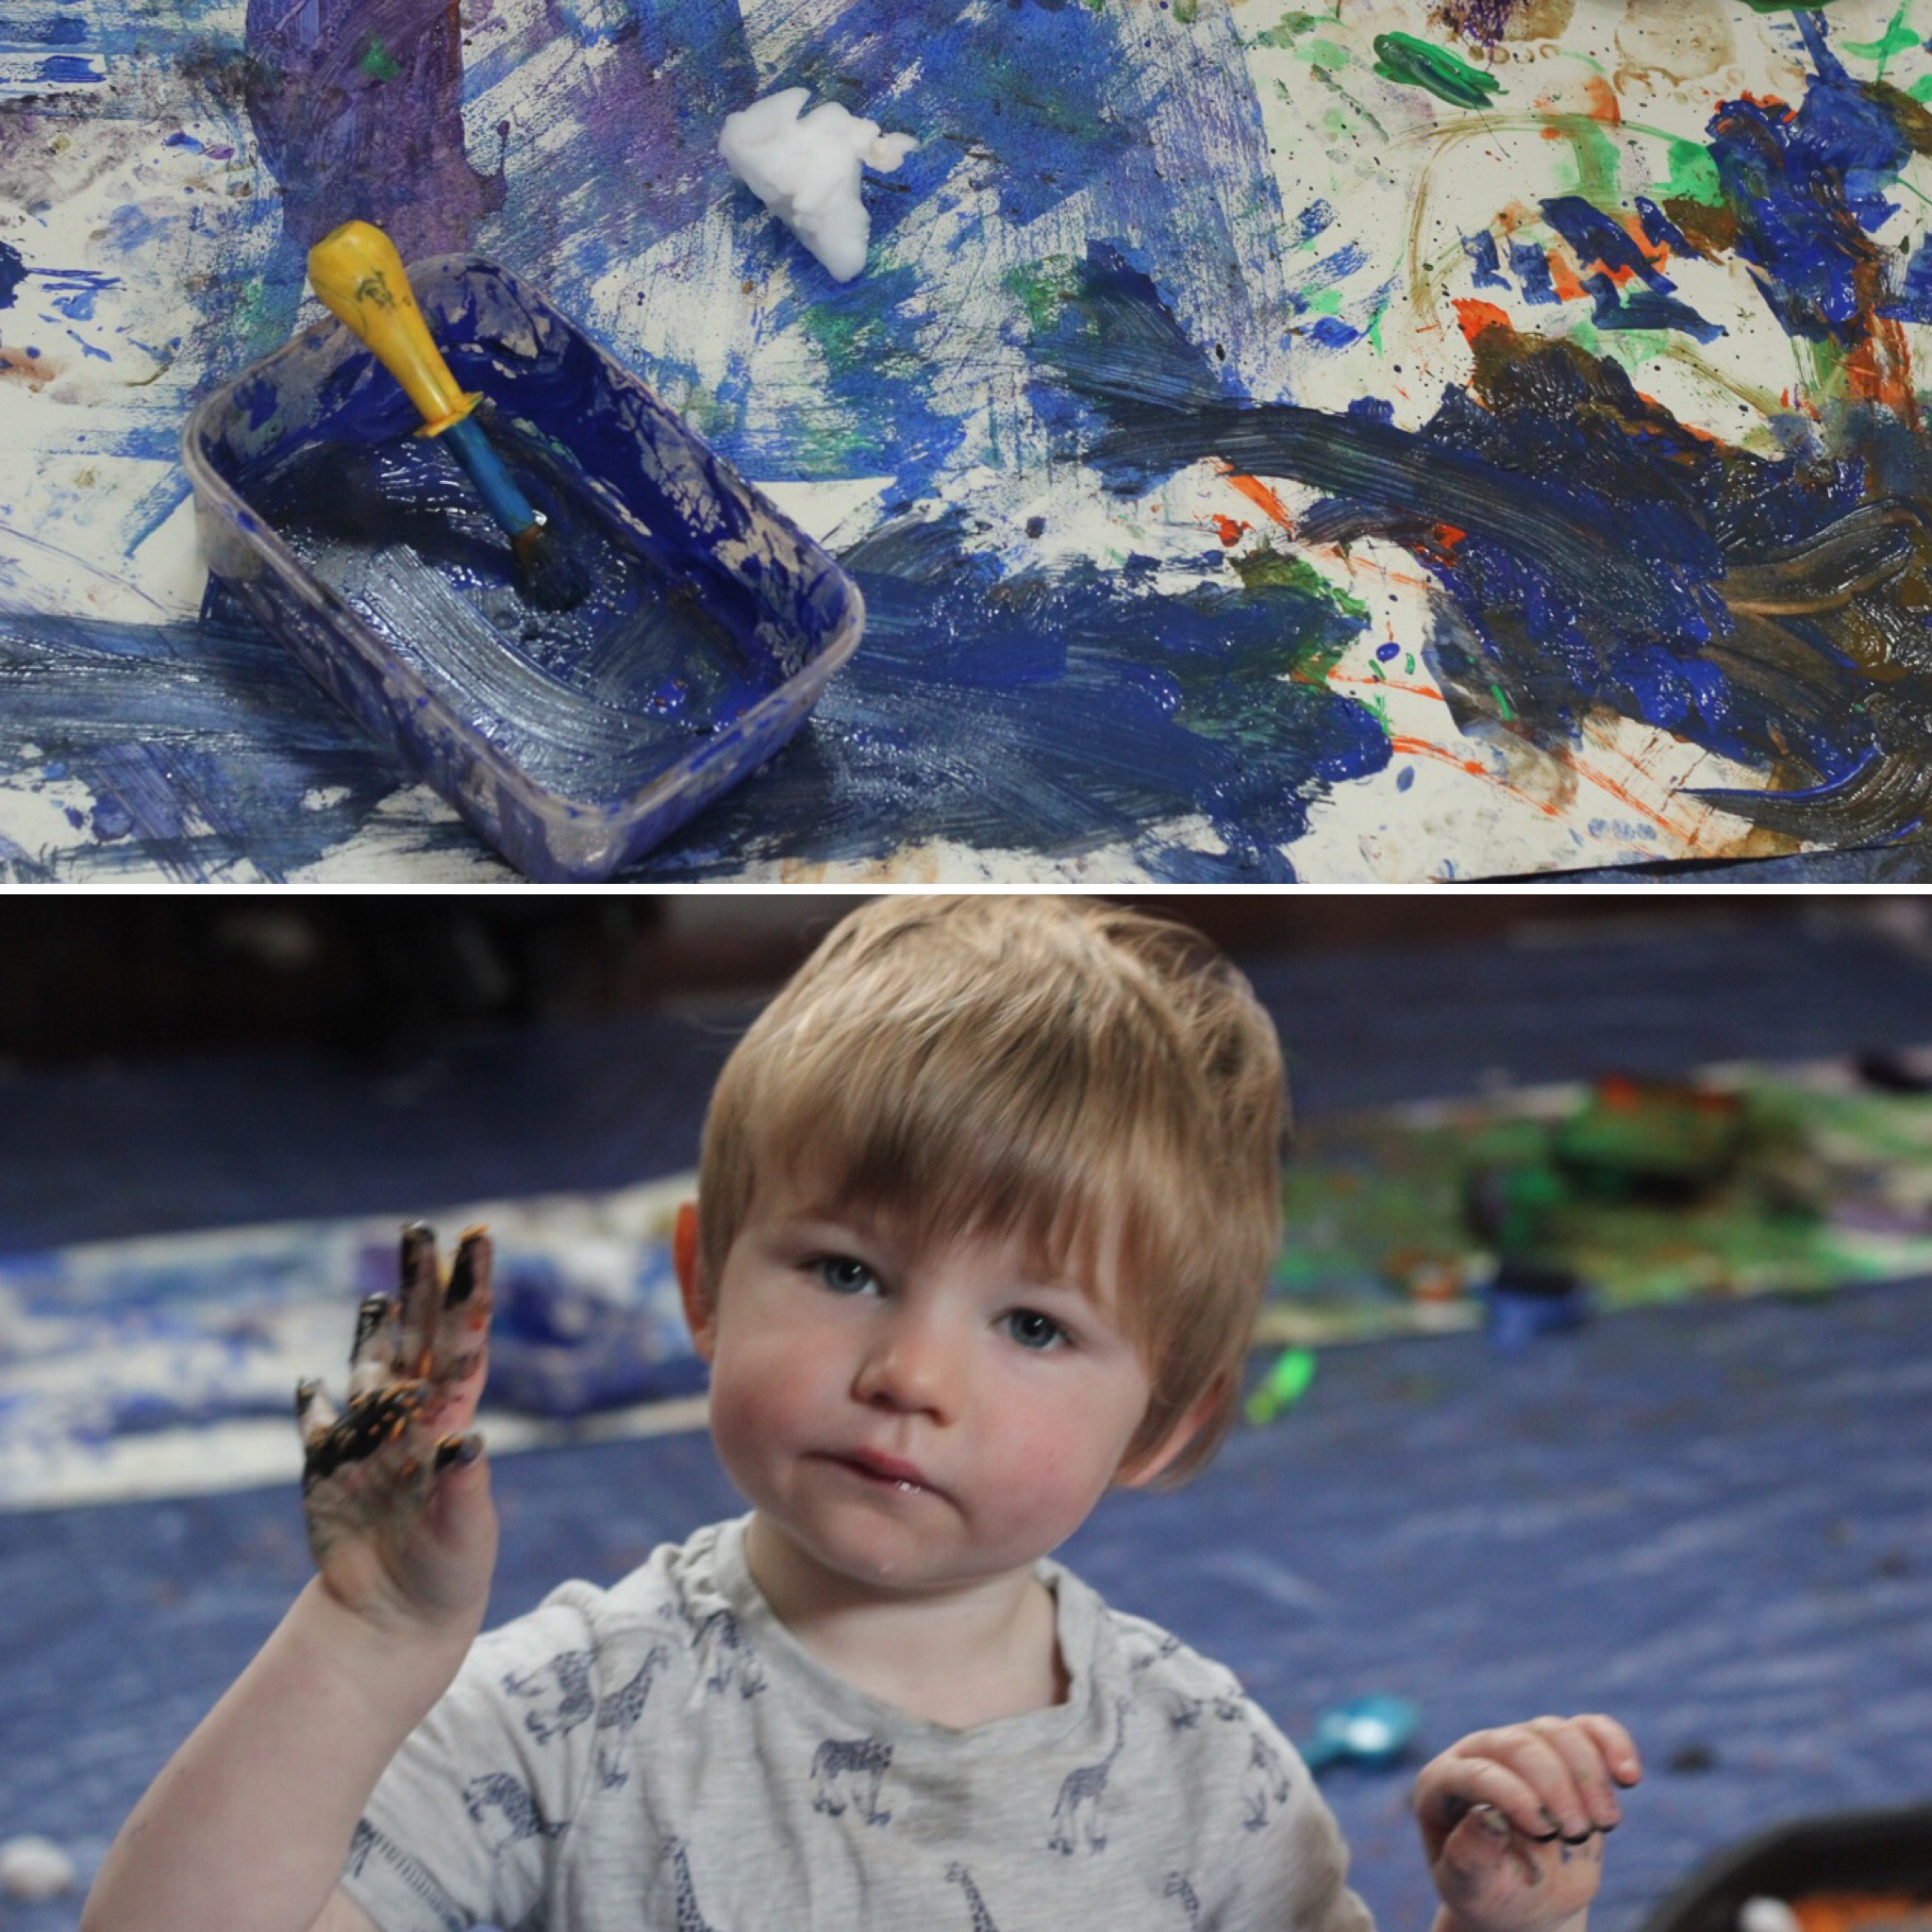 little-learners-preschool-classes-and-parties-a-boy-with-paint-on-his-hands-from-messy-play-mark-making-north-east-newcastle-north-tyneside